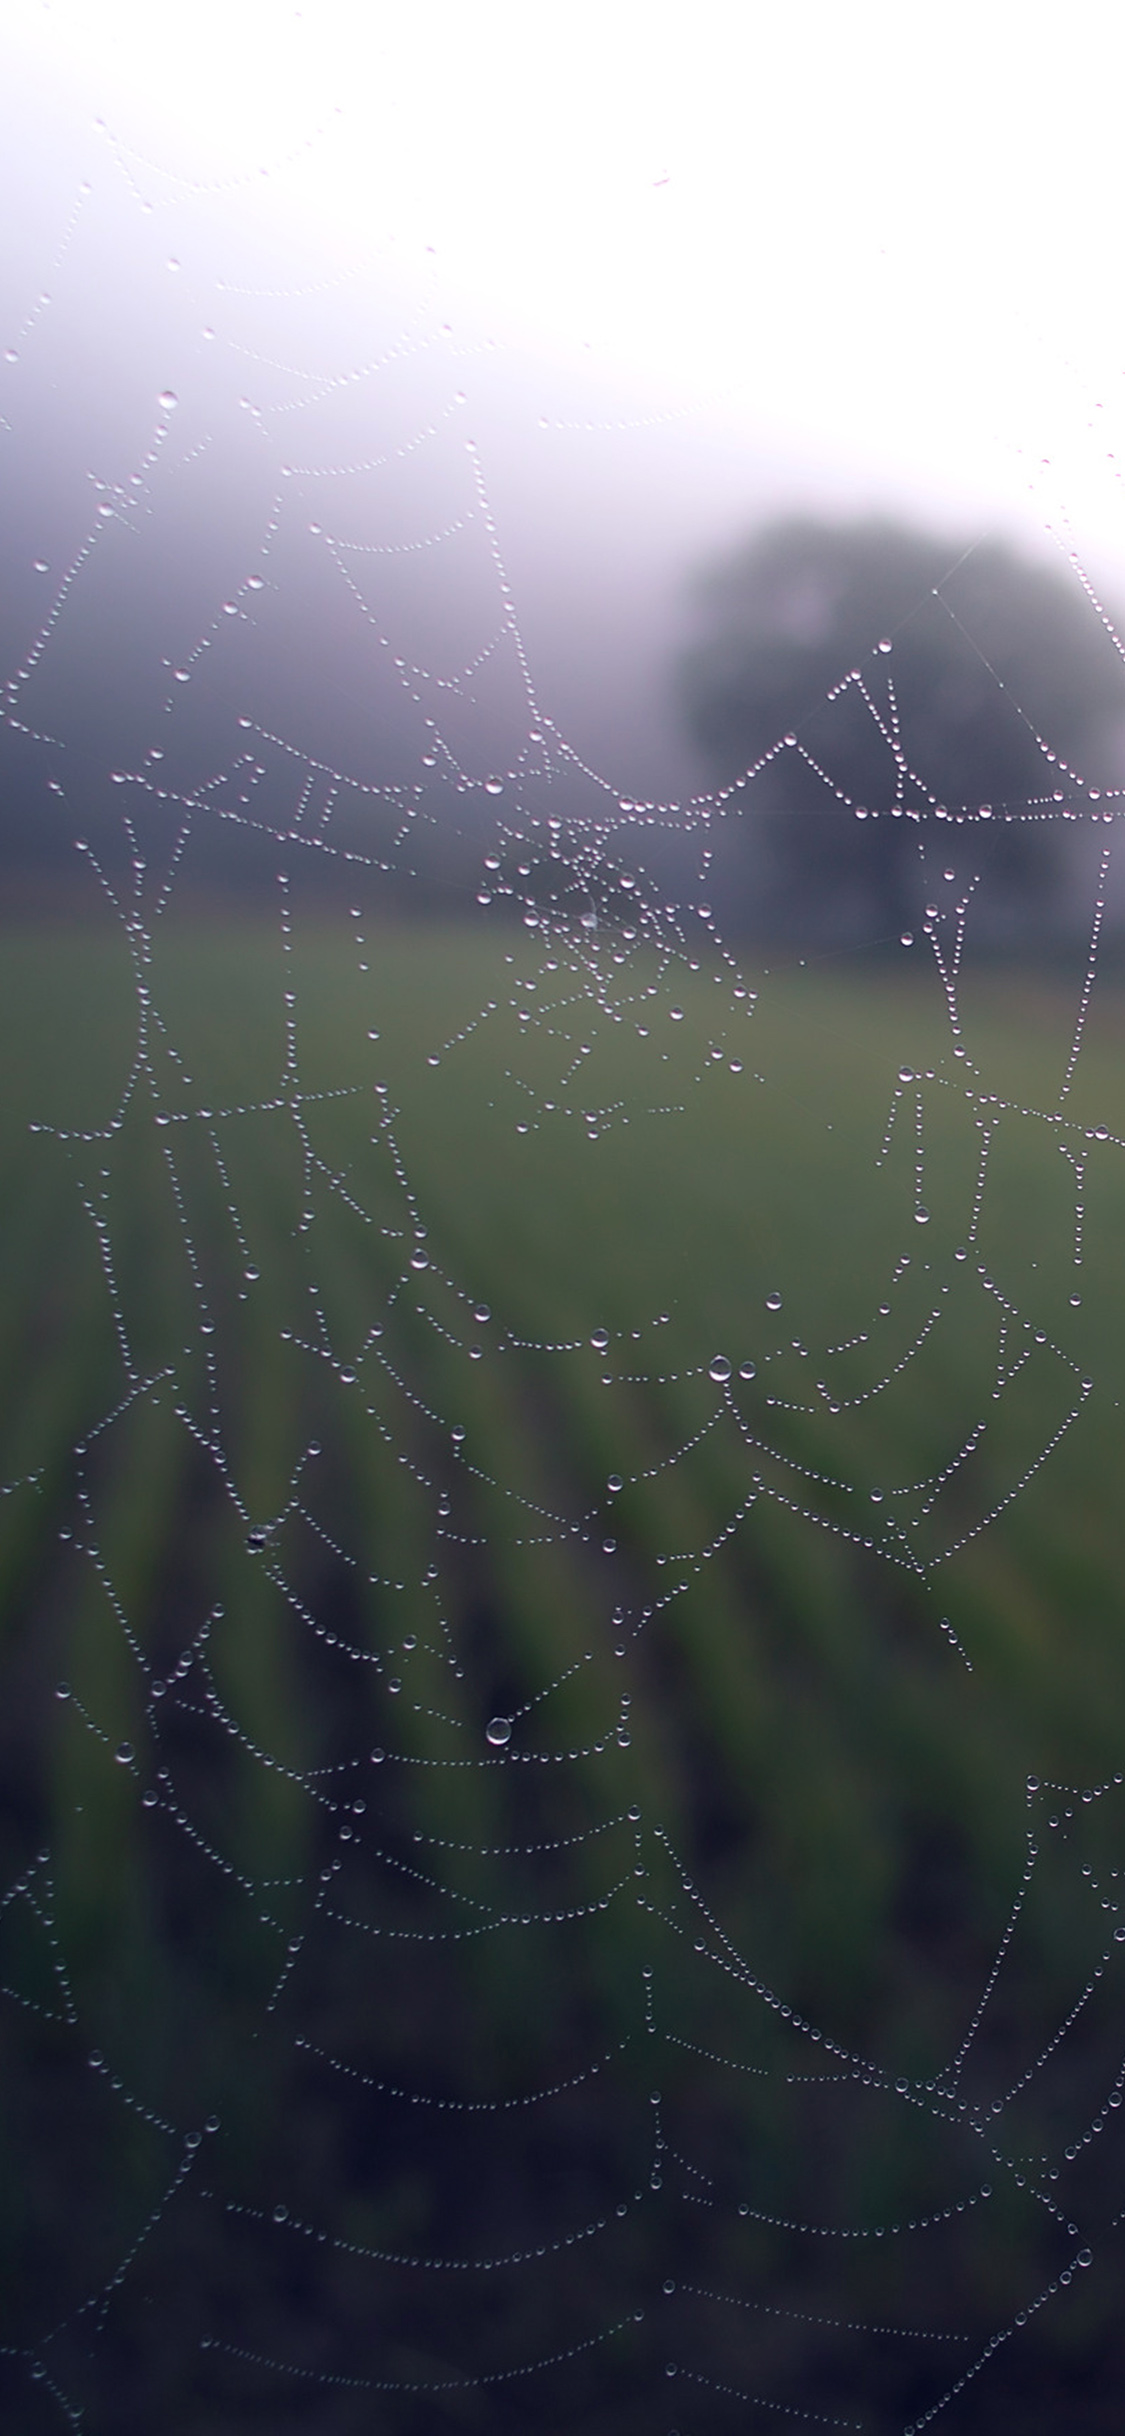 iPhoneXpapers.com-Apple-iPhone-wallpaper-mv02-morning-dew-spider-web-rain-water-nature